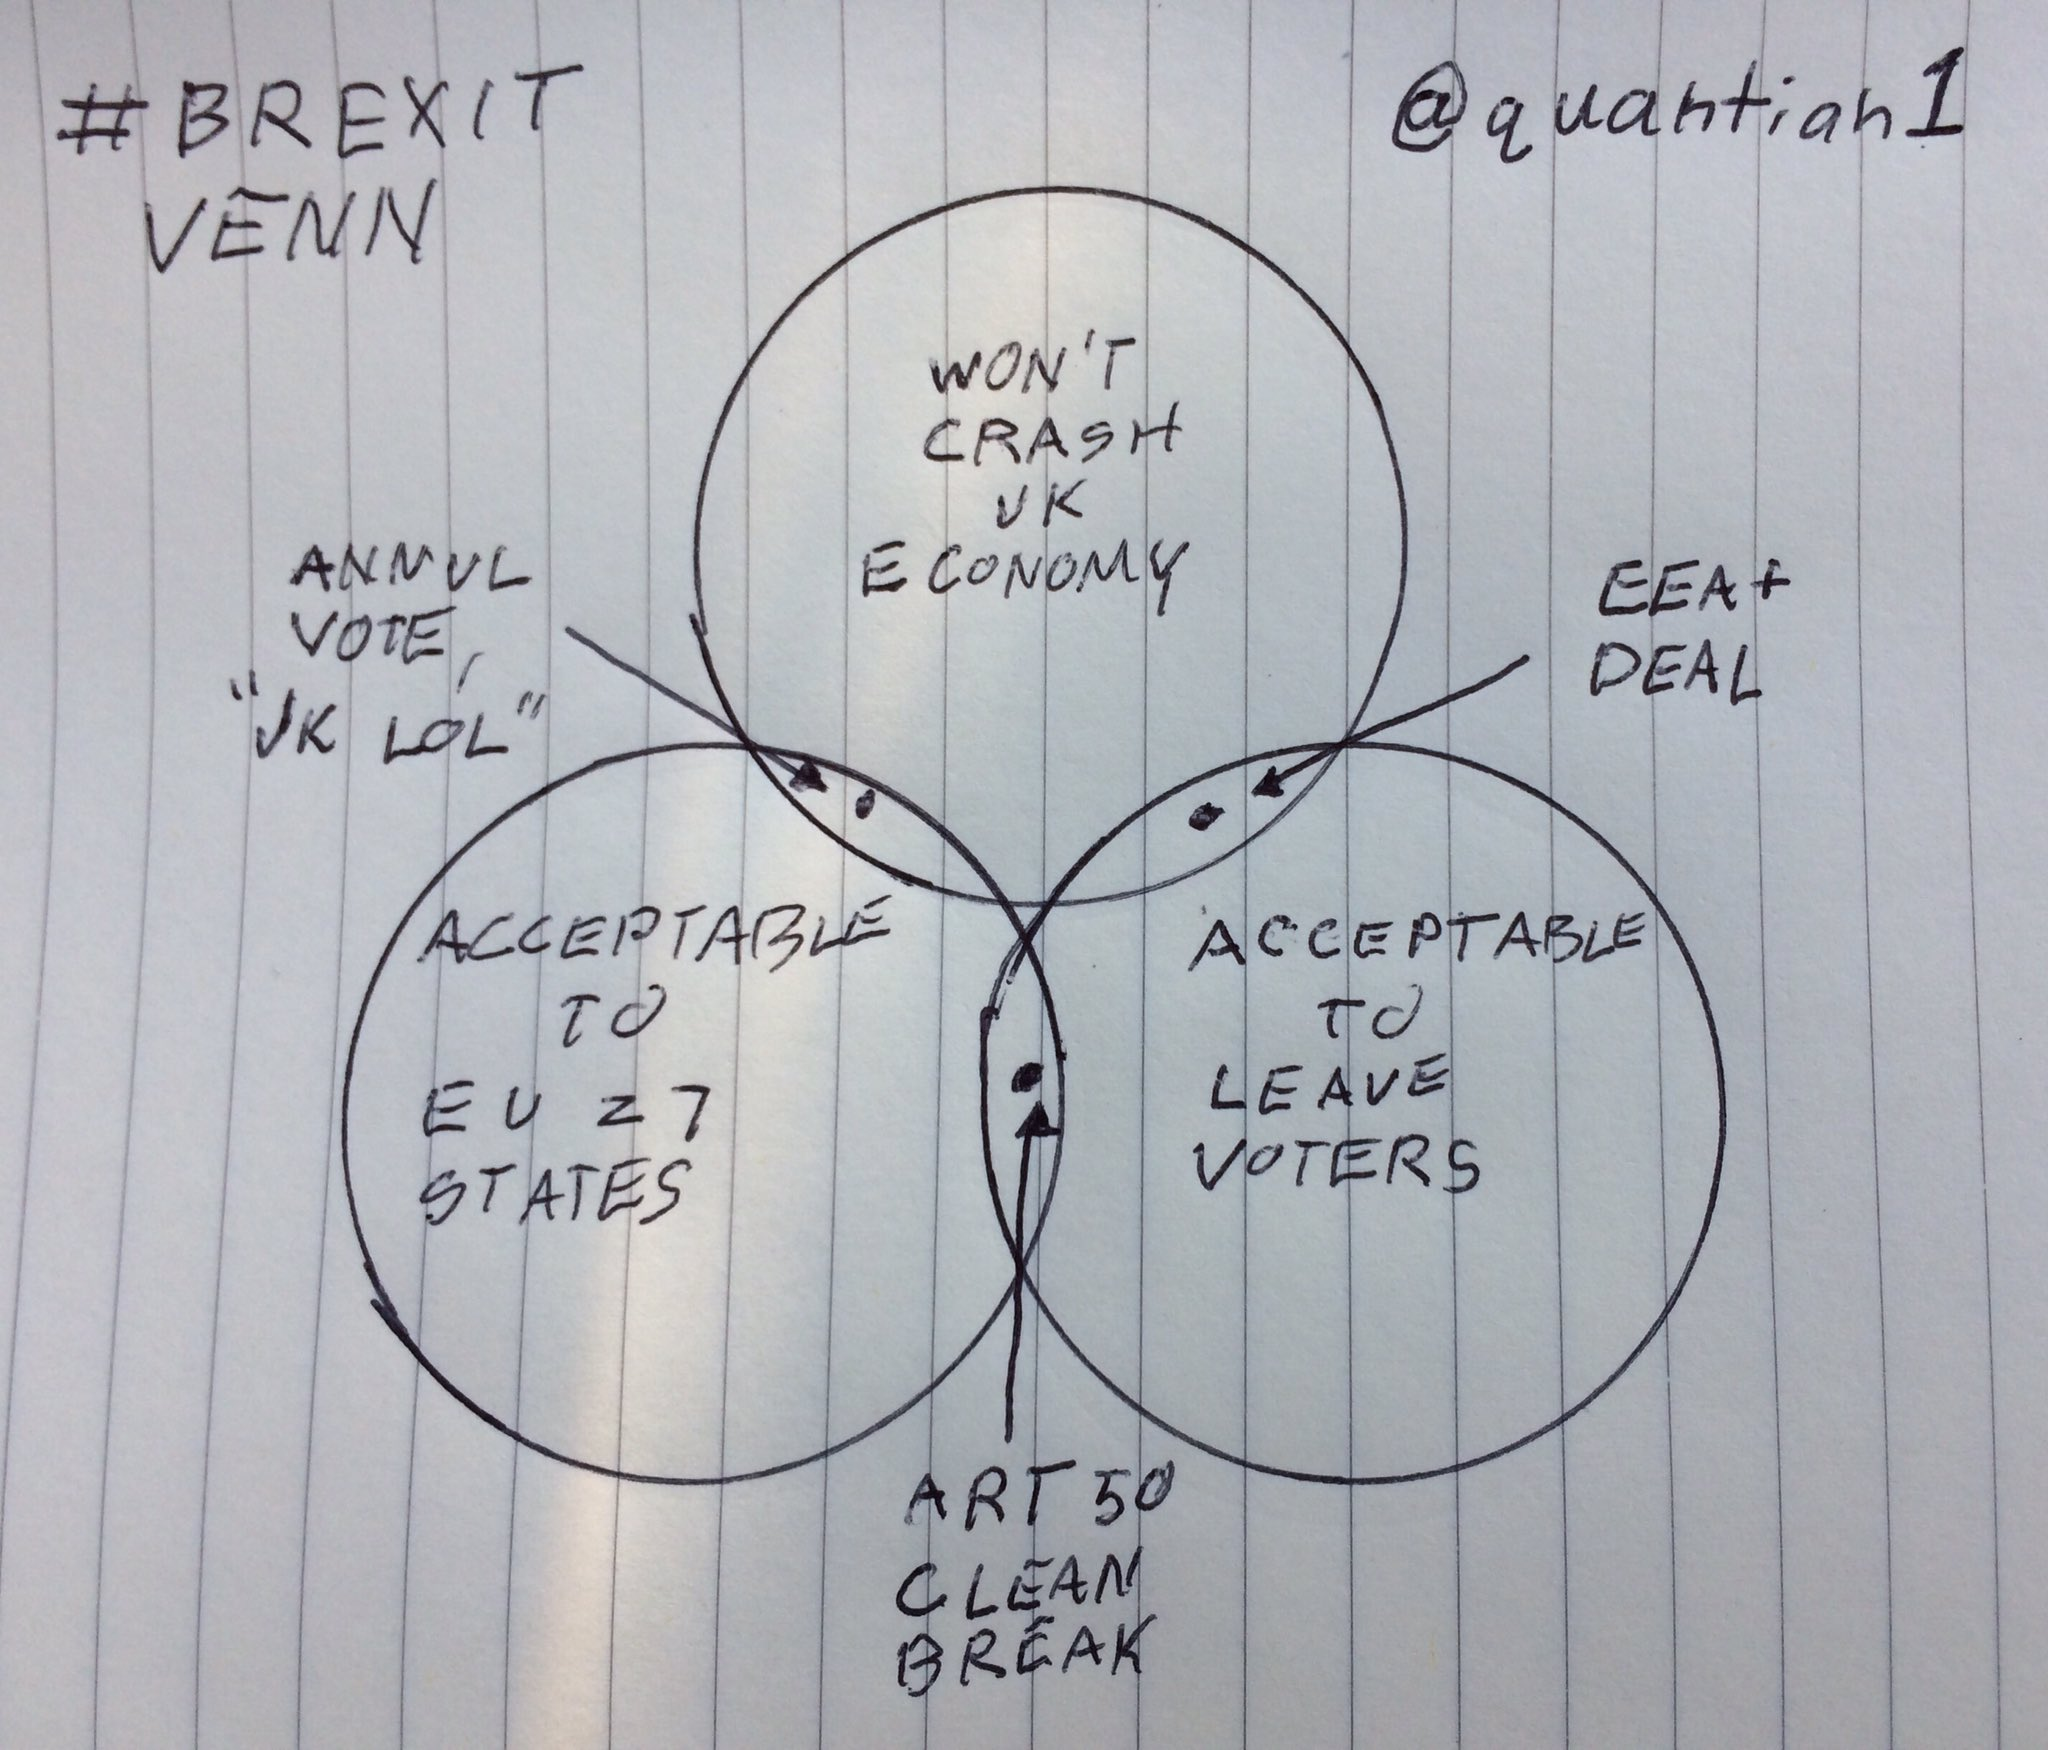 needs and wants venn diagram blaupunkt 2020 wiring brexit has put the uk in an impossible position this